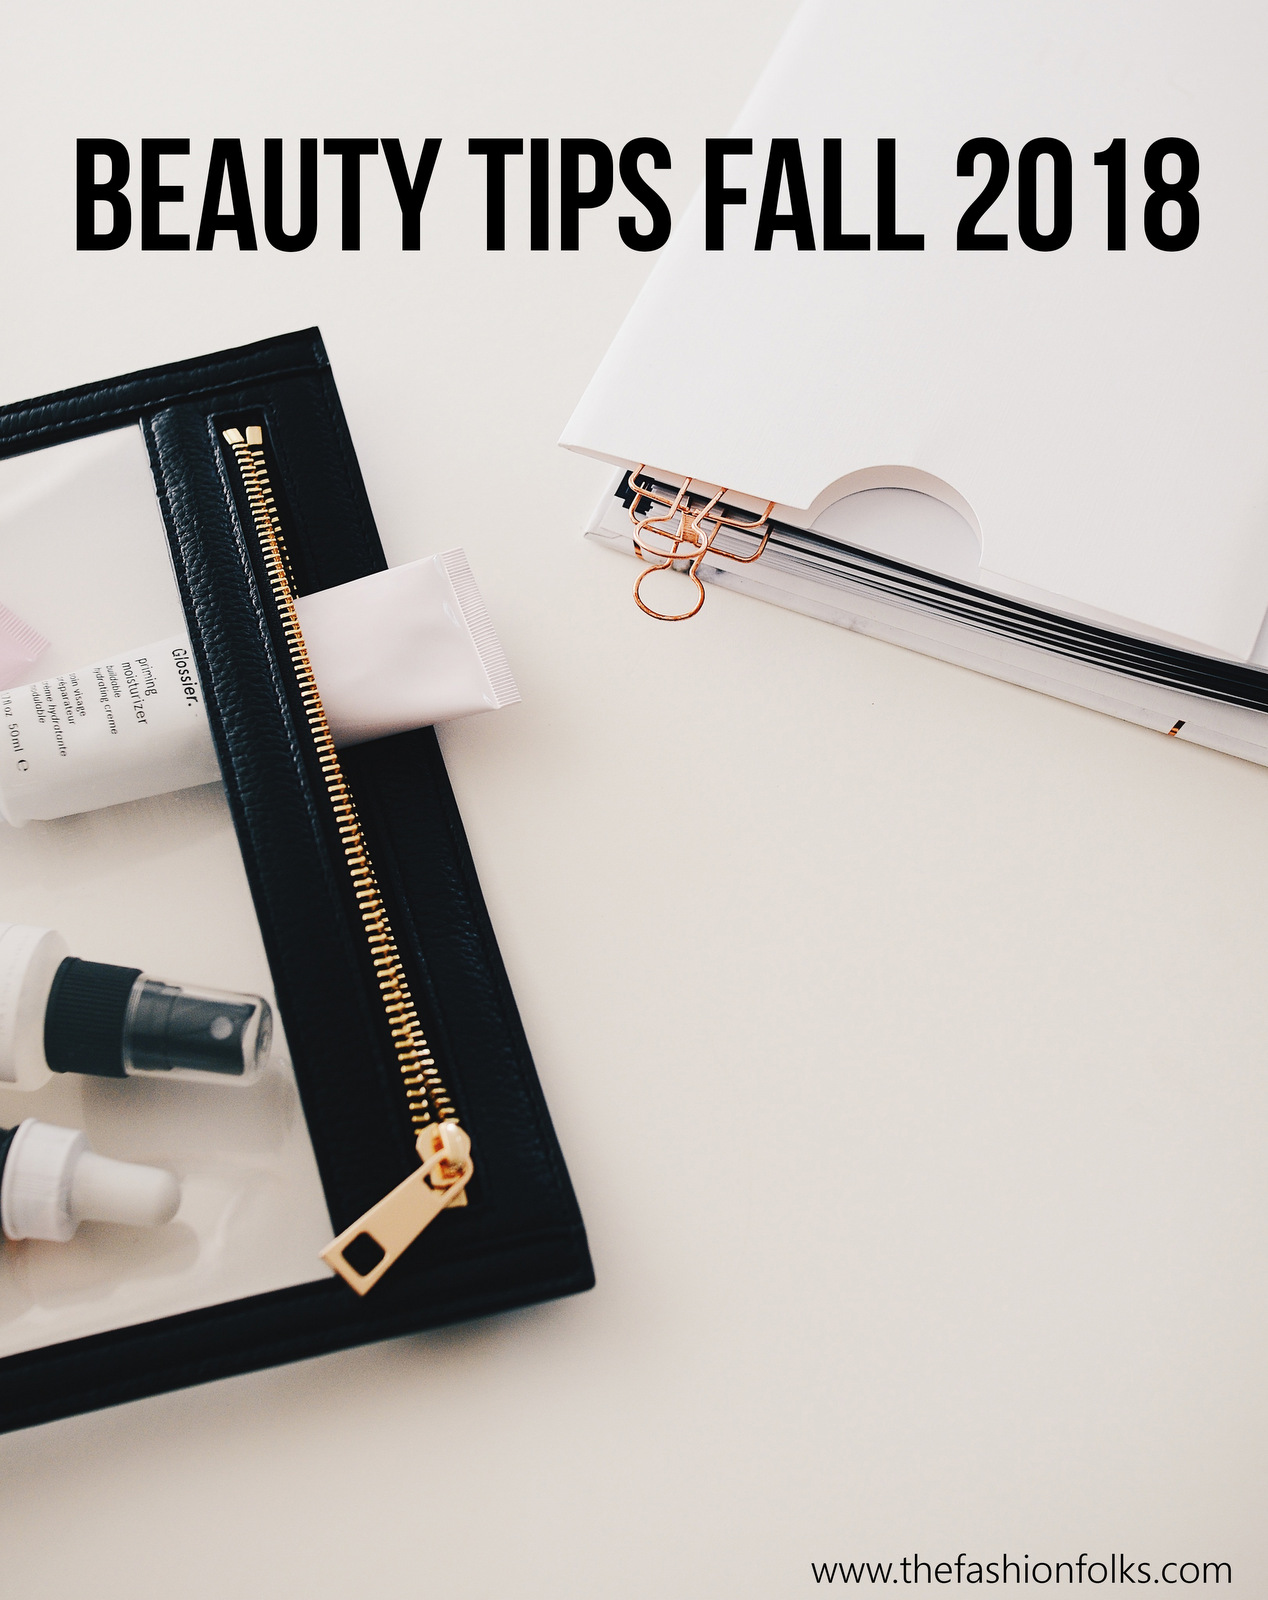 Beauty Tips Fall 2018